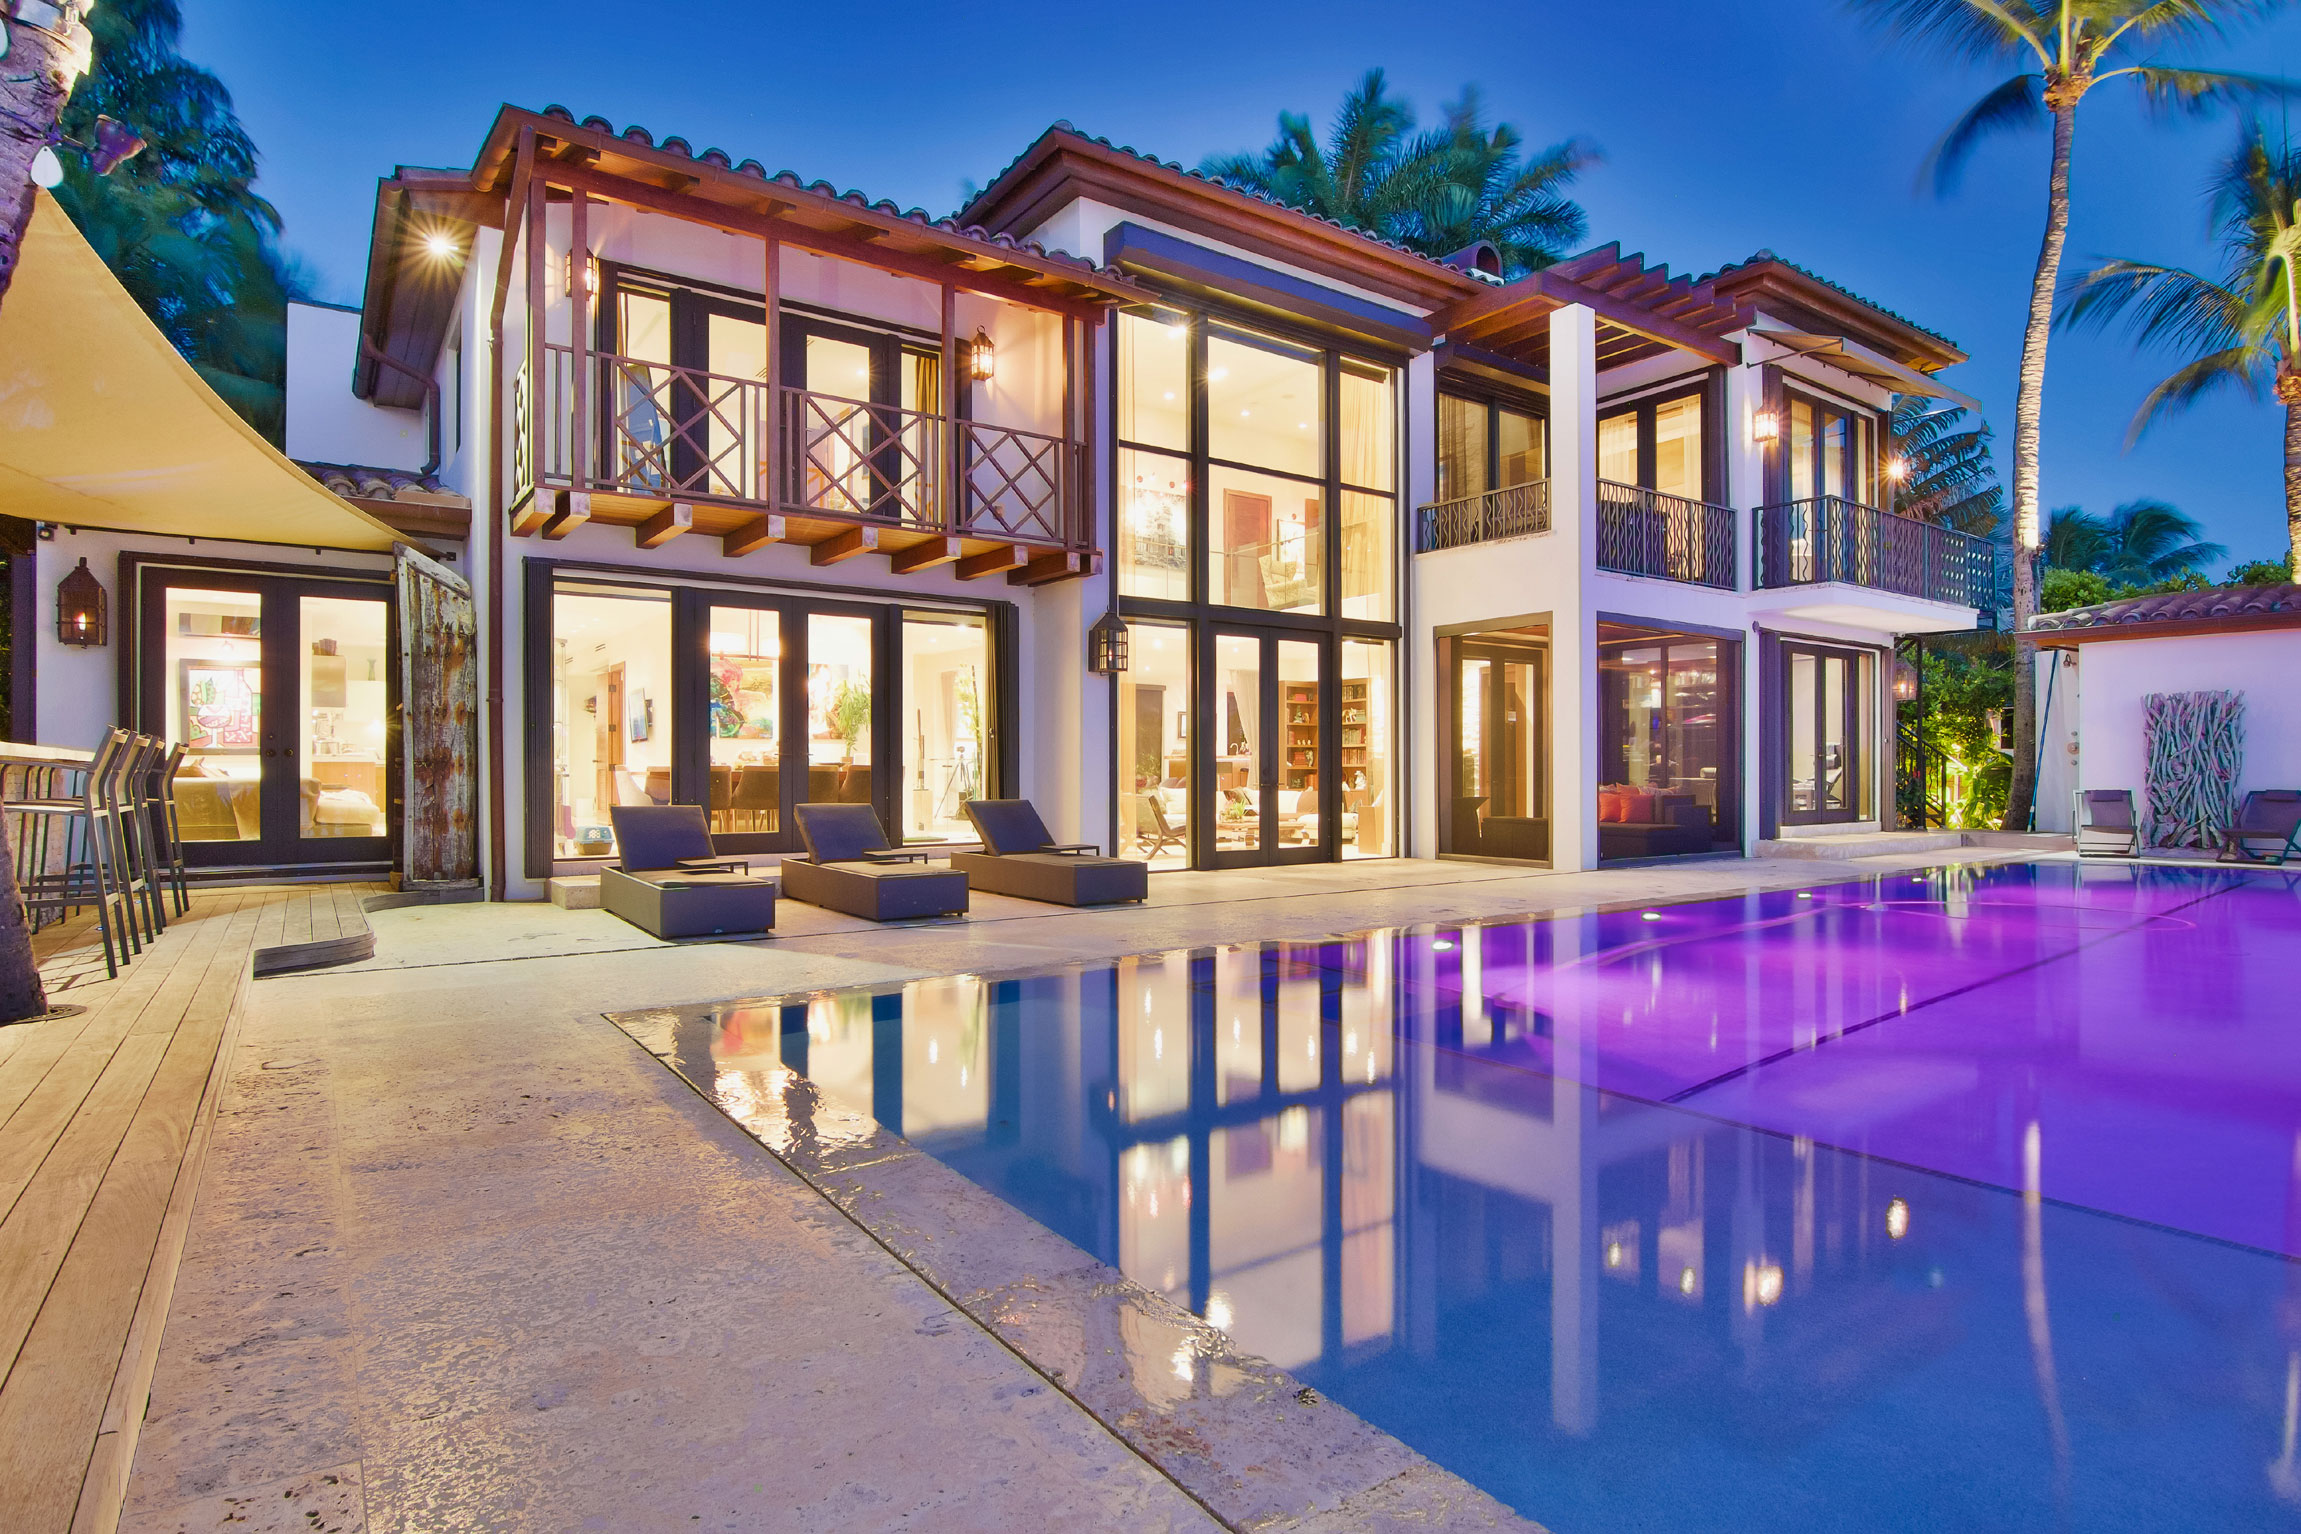 The beaches and nightlife of Miami make it a top celebrity hotspot. This tropical waterfront home enjoys a star-studded location in the Venetian Islands, a cluster of ultra-exclusive residential islands in Biscayne Bay.